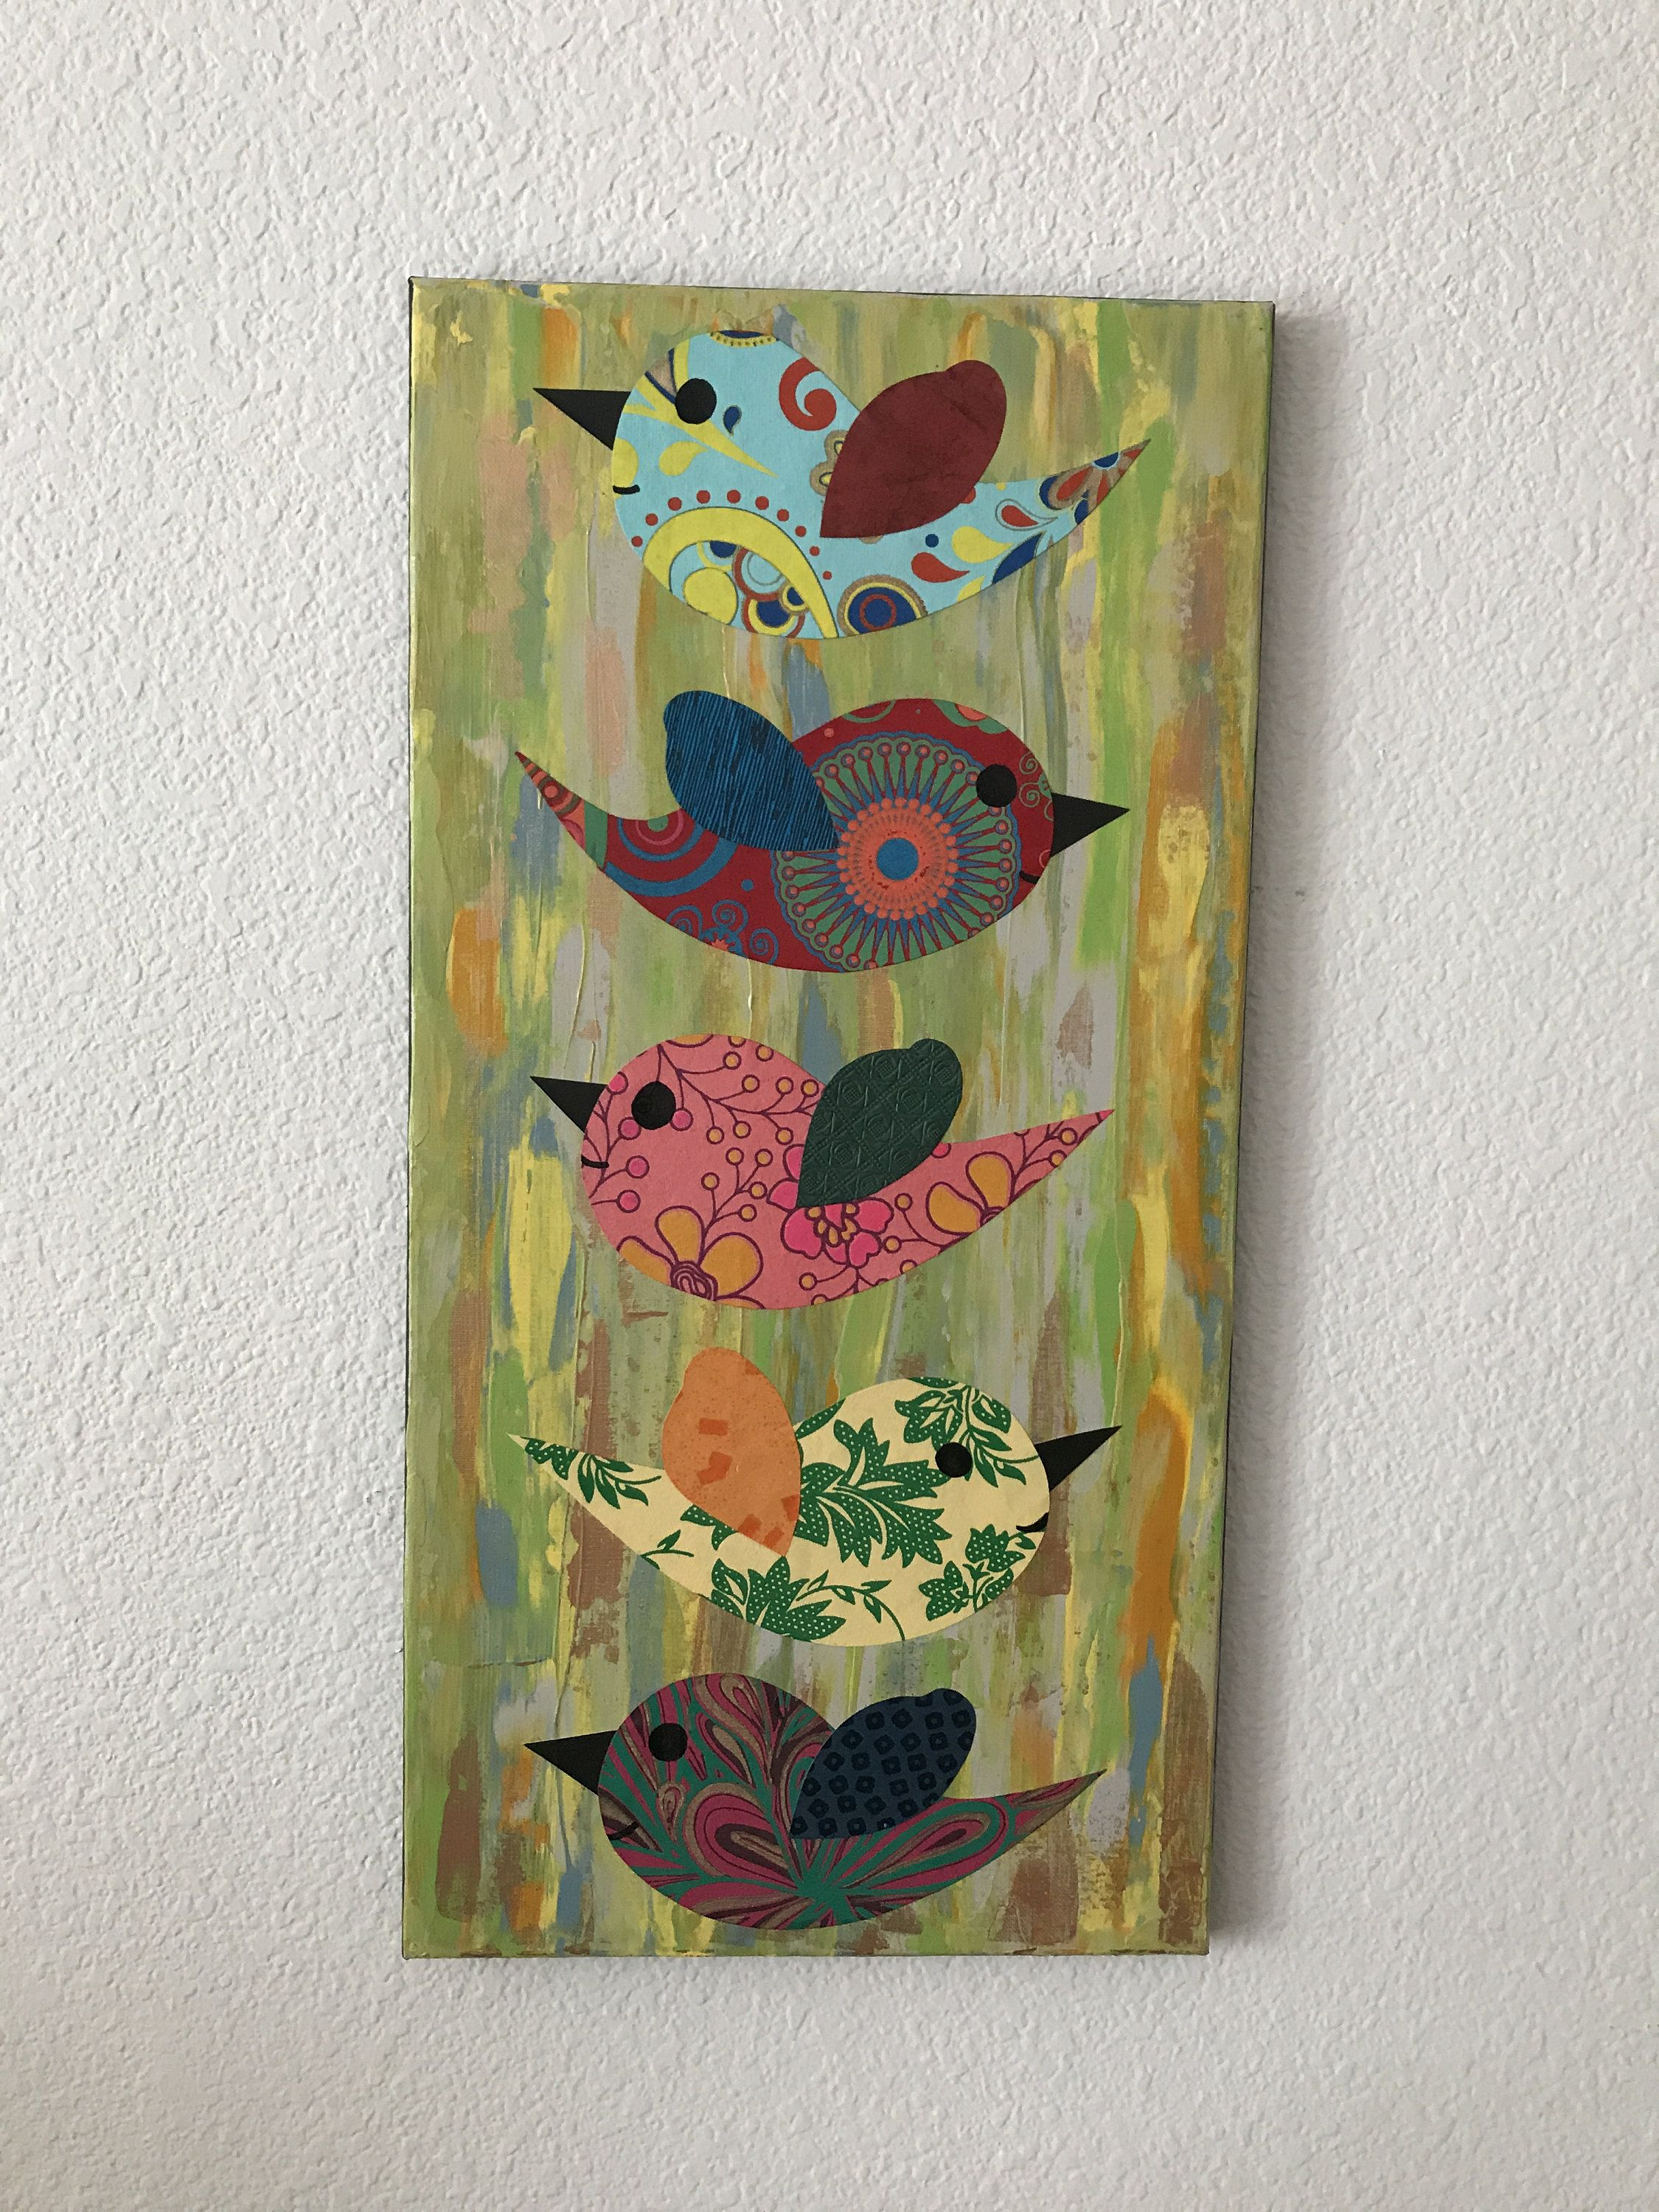 Paper collage mixed media art colorful birds golden home decor abstract painting wall also rh pinterest